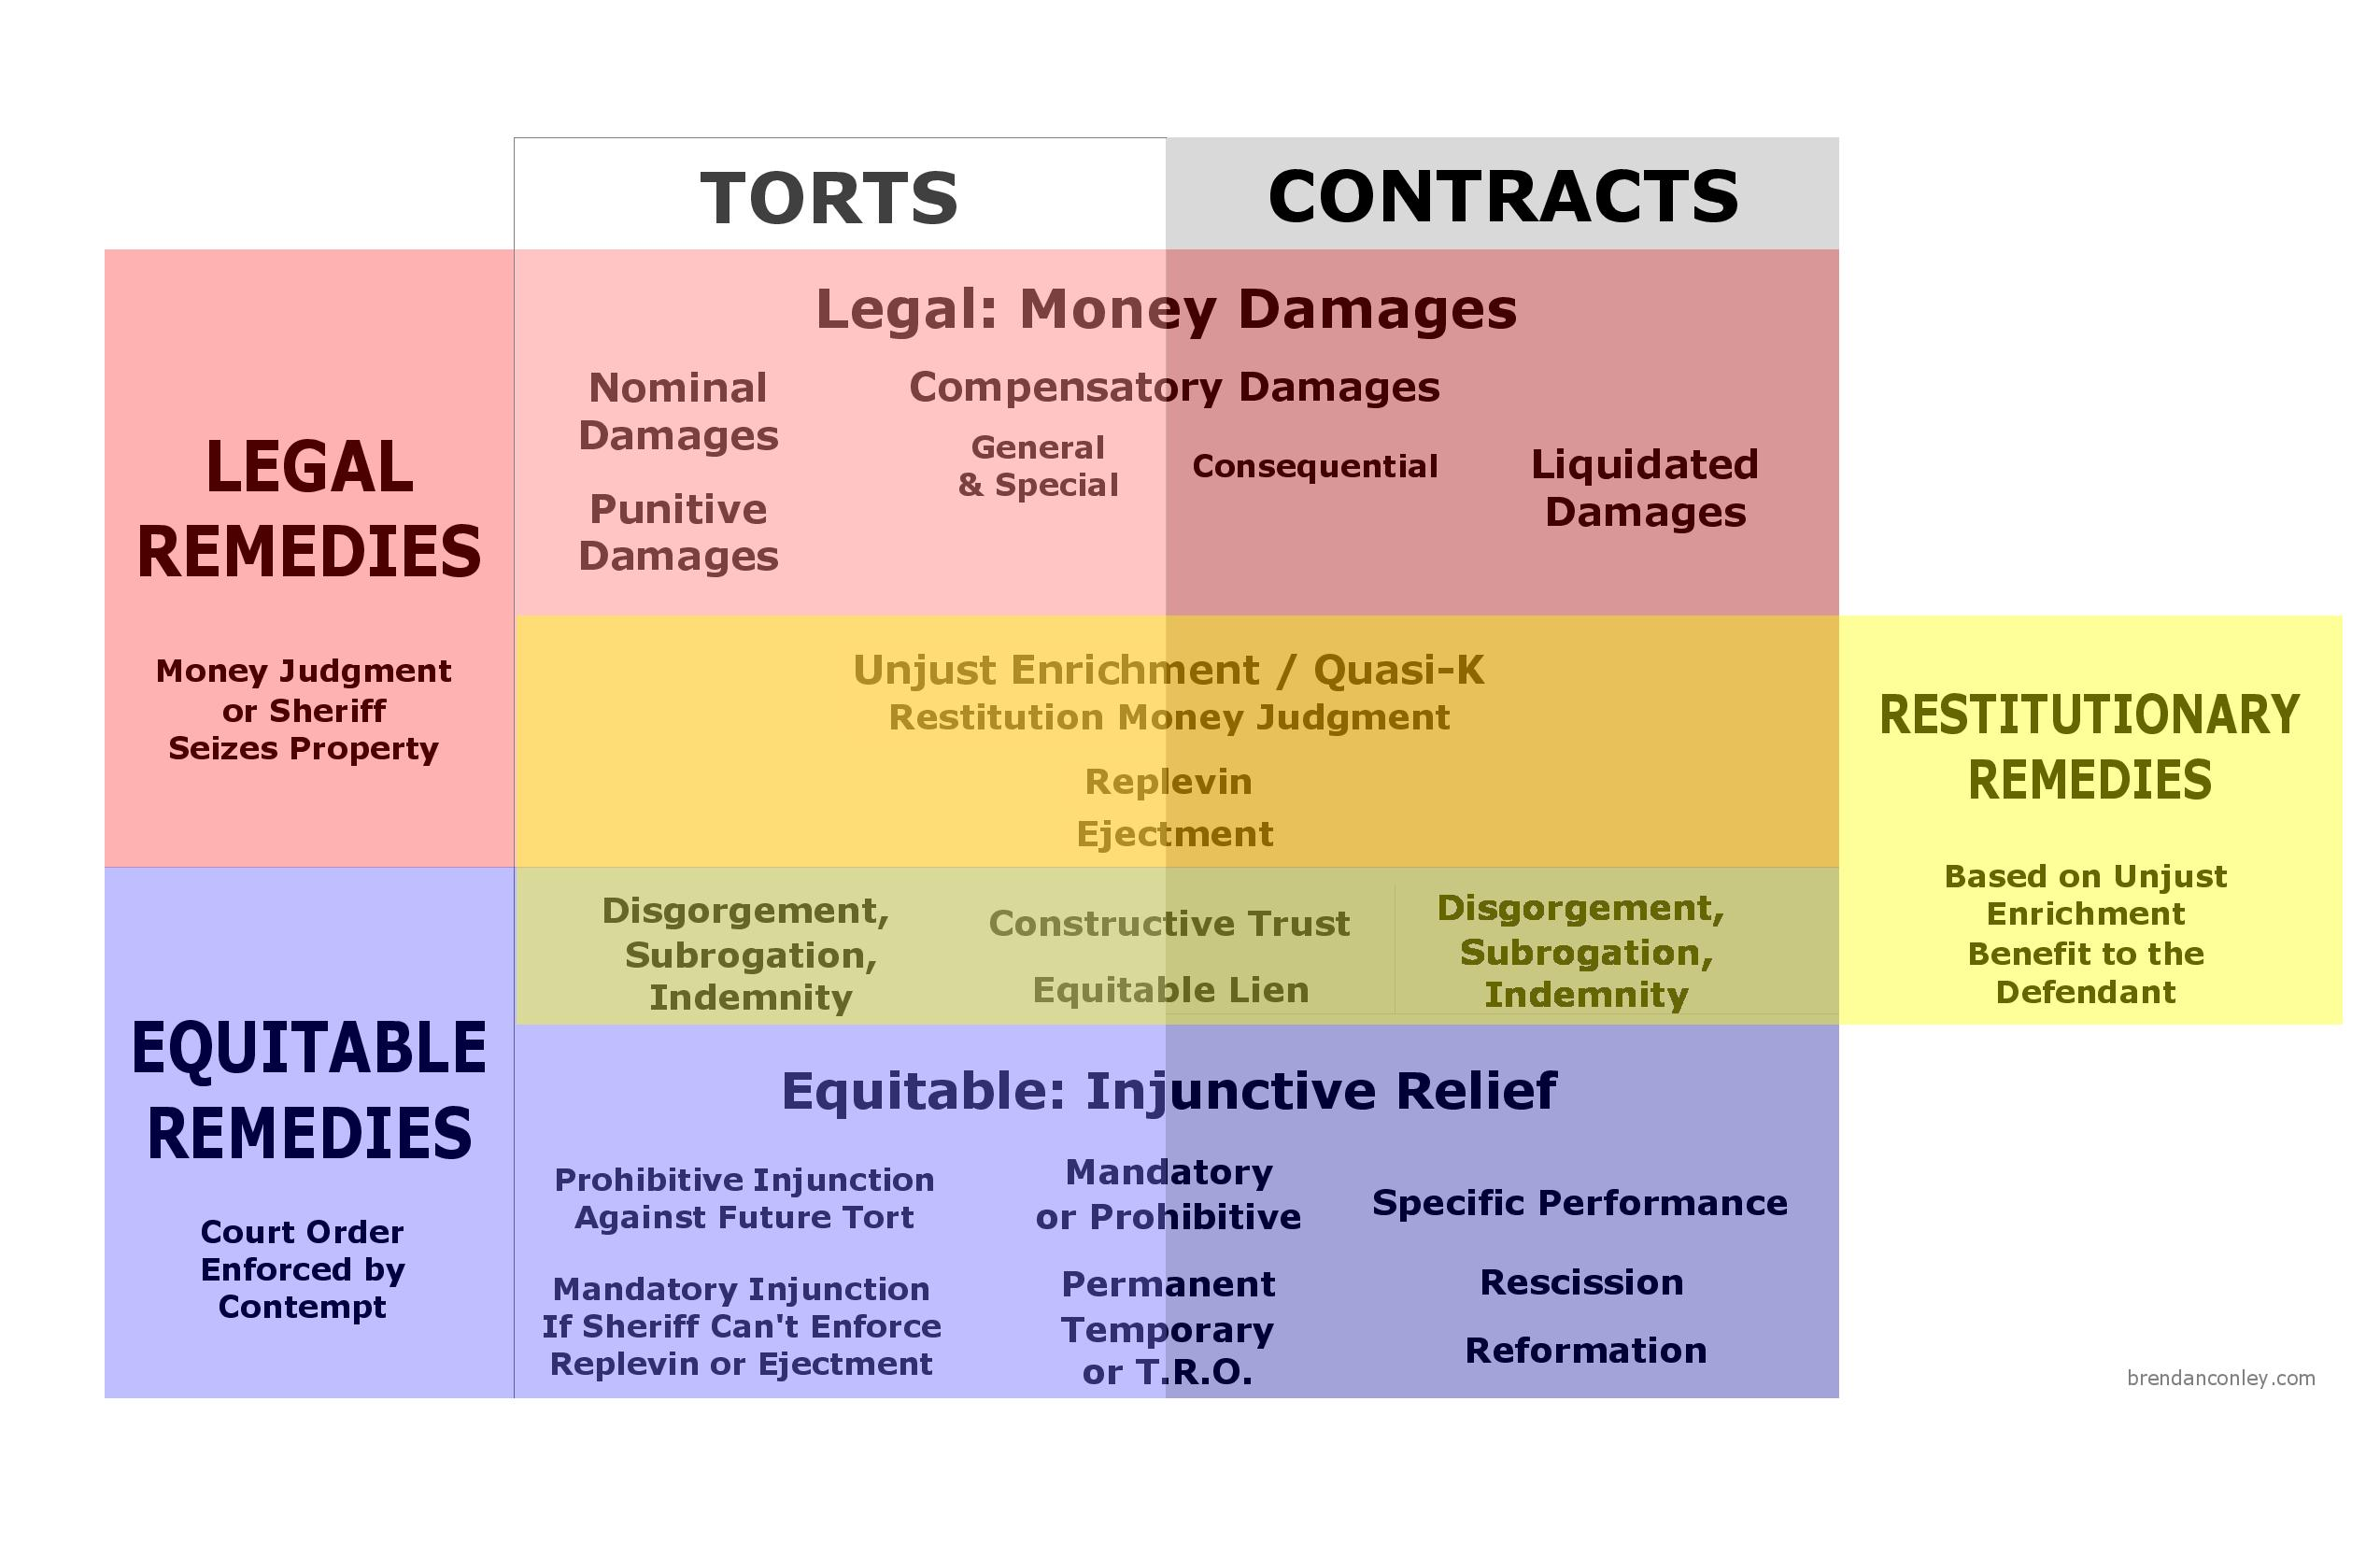 Remedies for torts and contracts visual law library remedies for torts and contracts by brendan conley geenschuldenfo Images